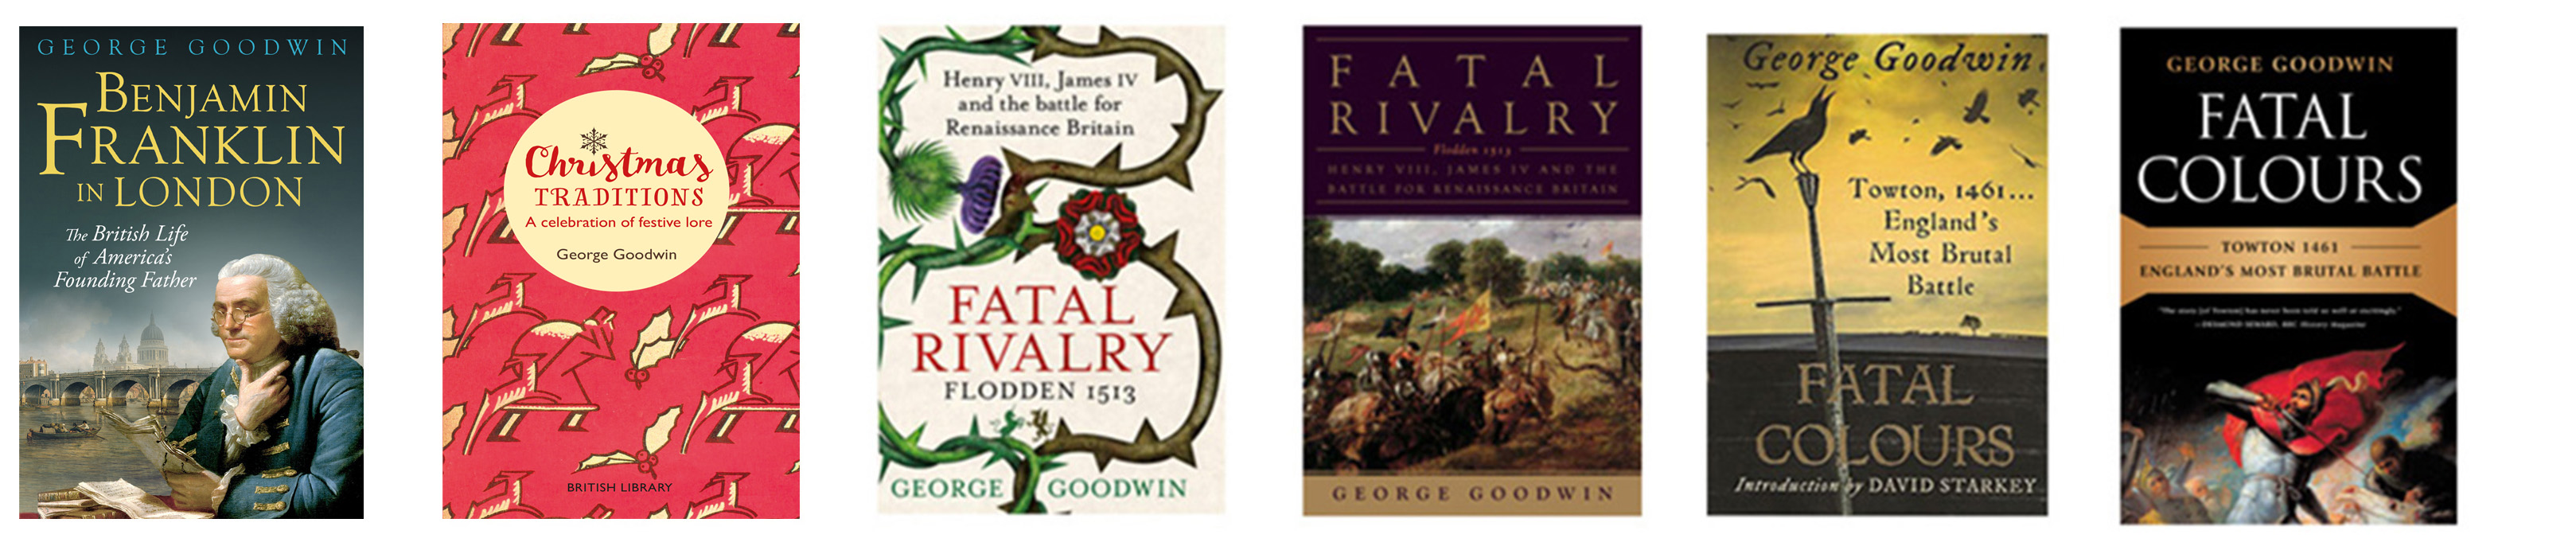 Covers of books by George Goodwin